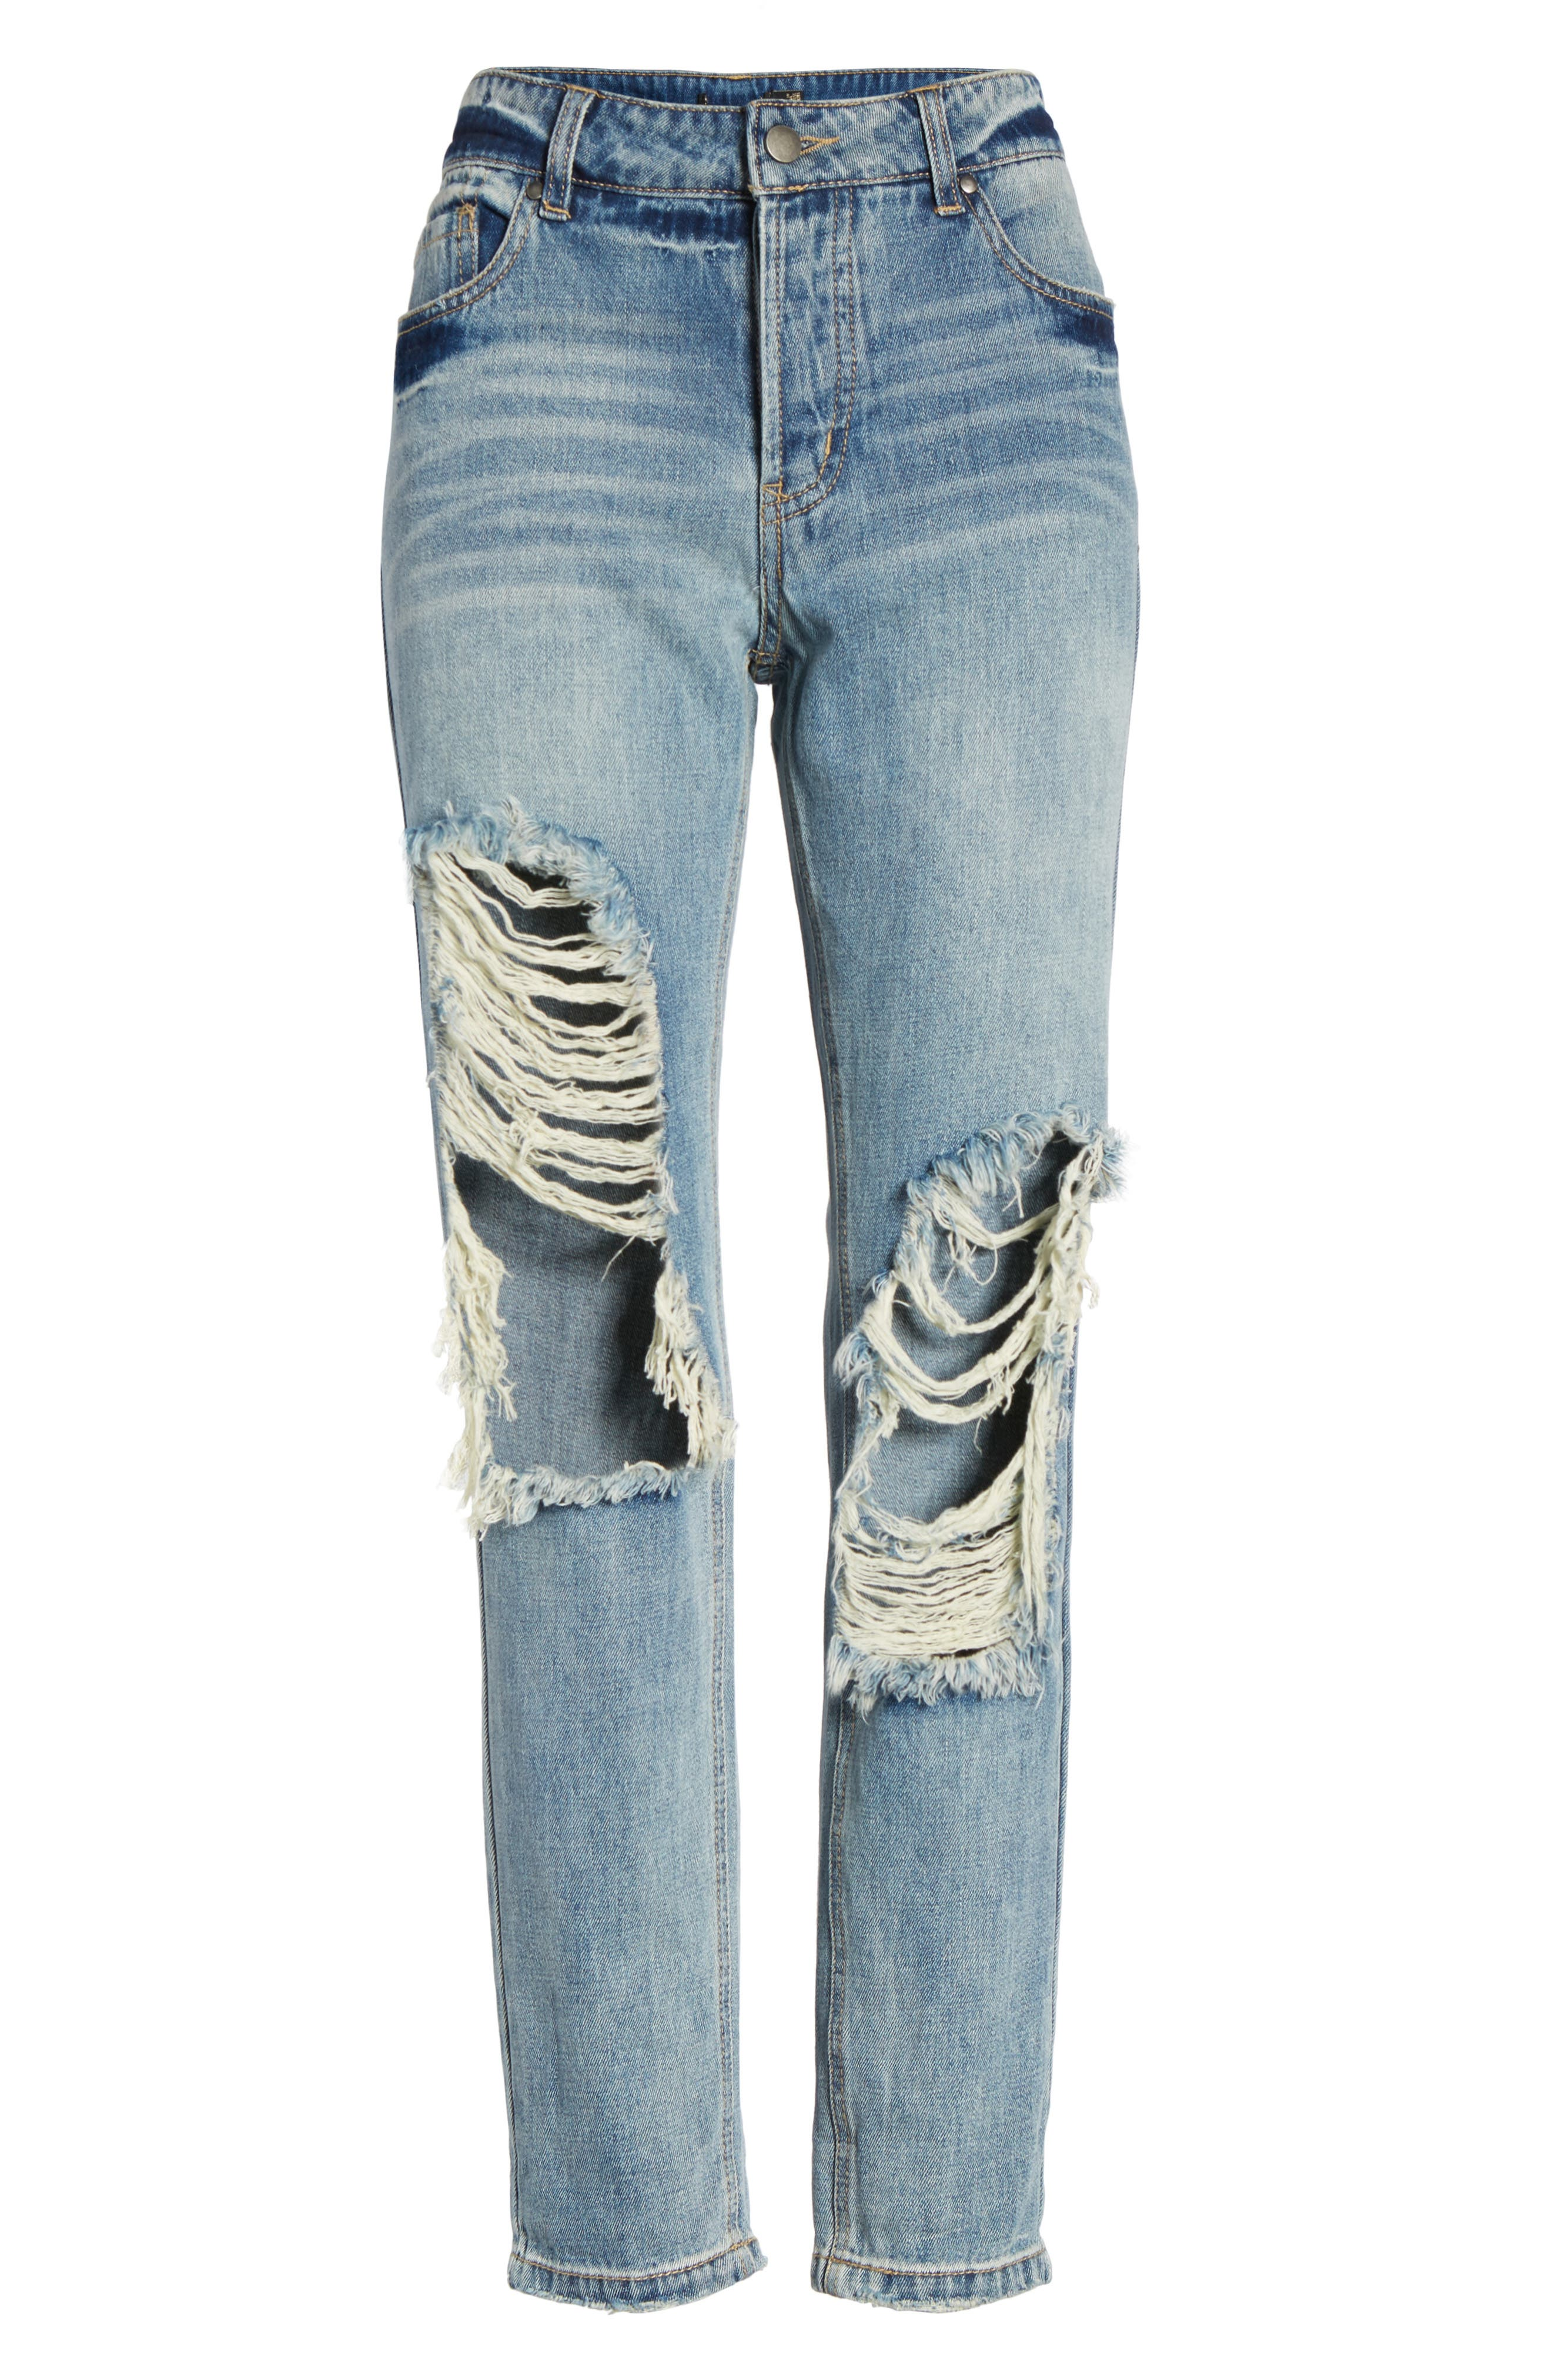 Cyrus High Waist Ankle Jeans,                             Alternate thumbnail 6, color,                             SINNER WASH